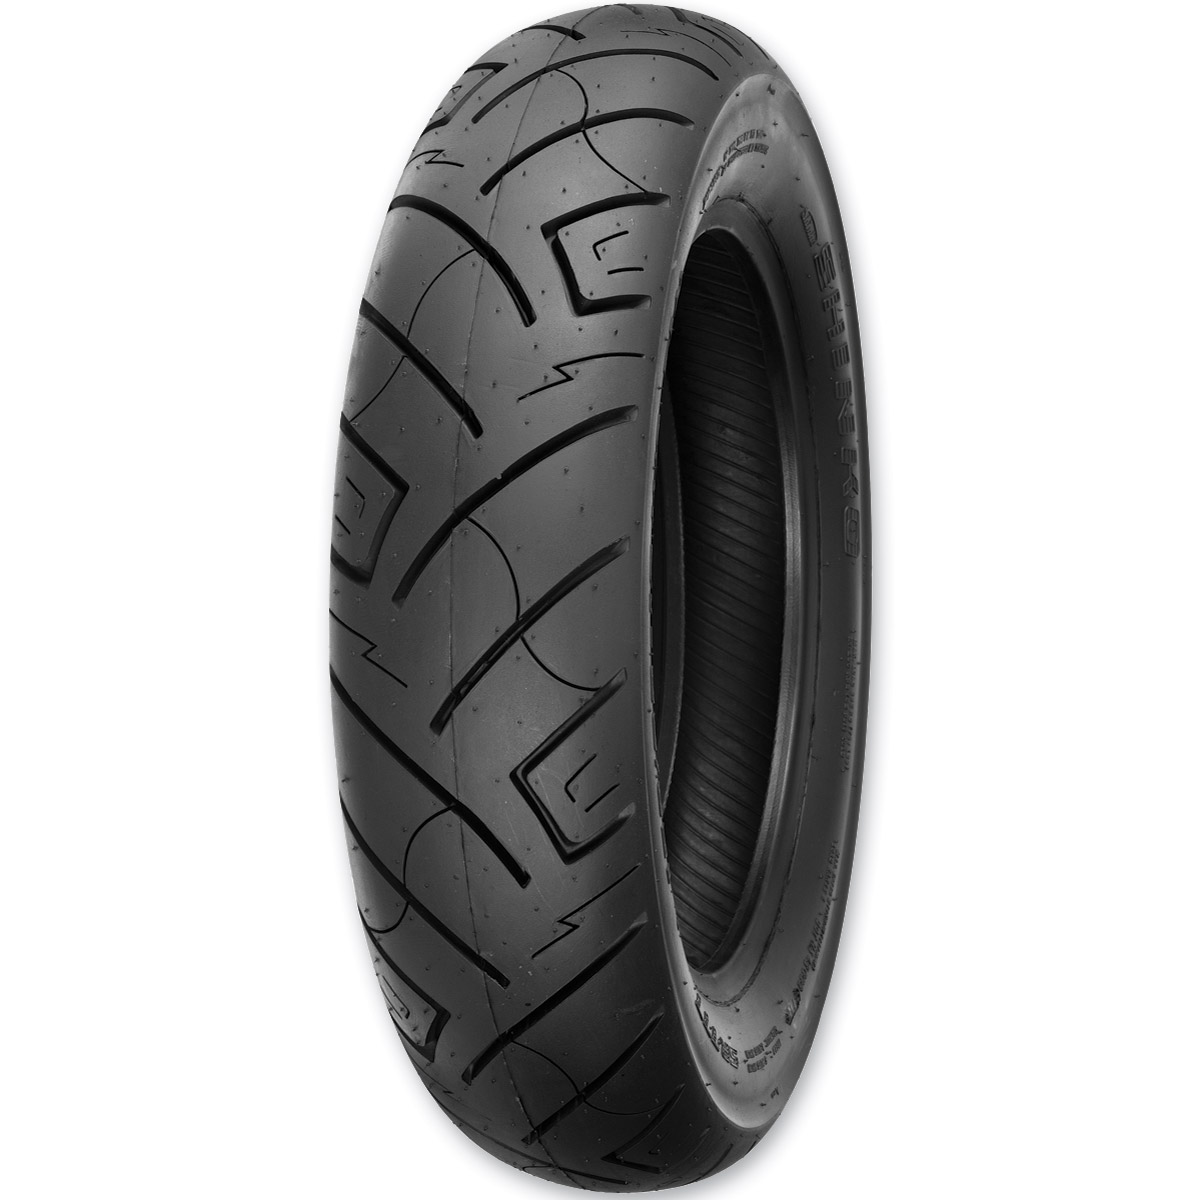 Shinko 777 170/70-16 Rear Tire